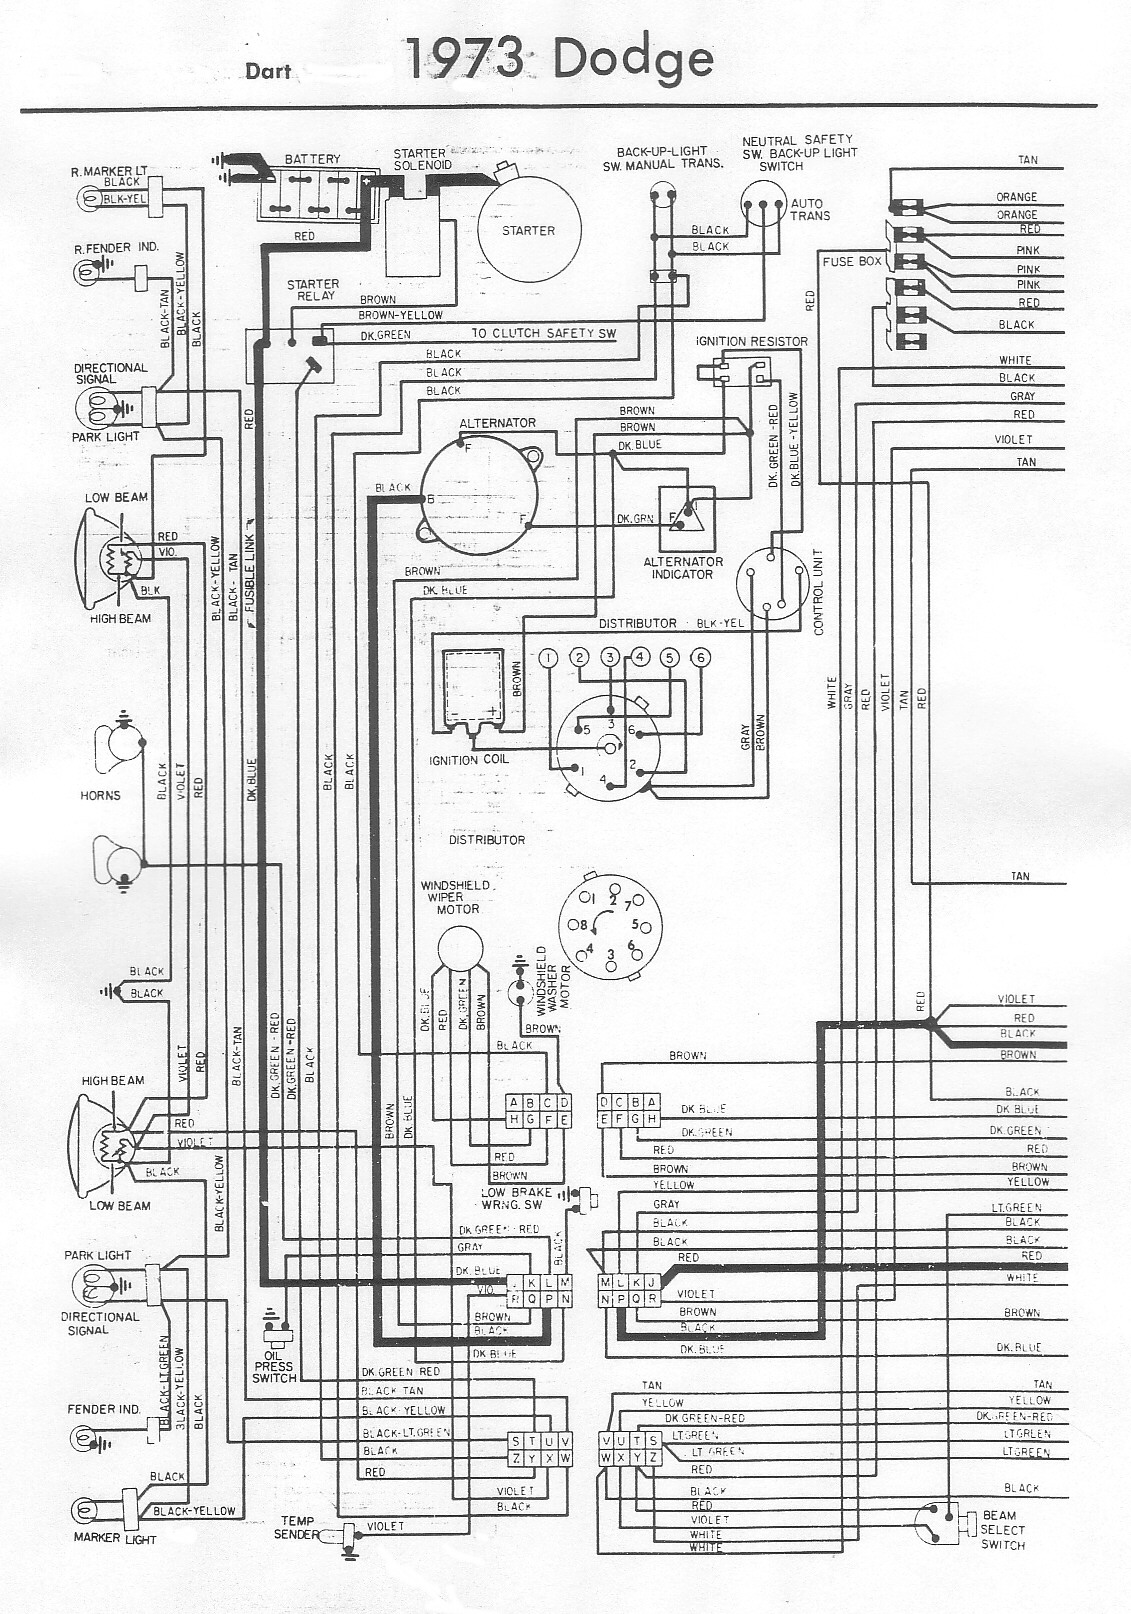 1973 dodge charger ignition wiring diagram 2005 nissan 350z stereo dart  bob 39s garage library